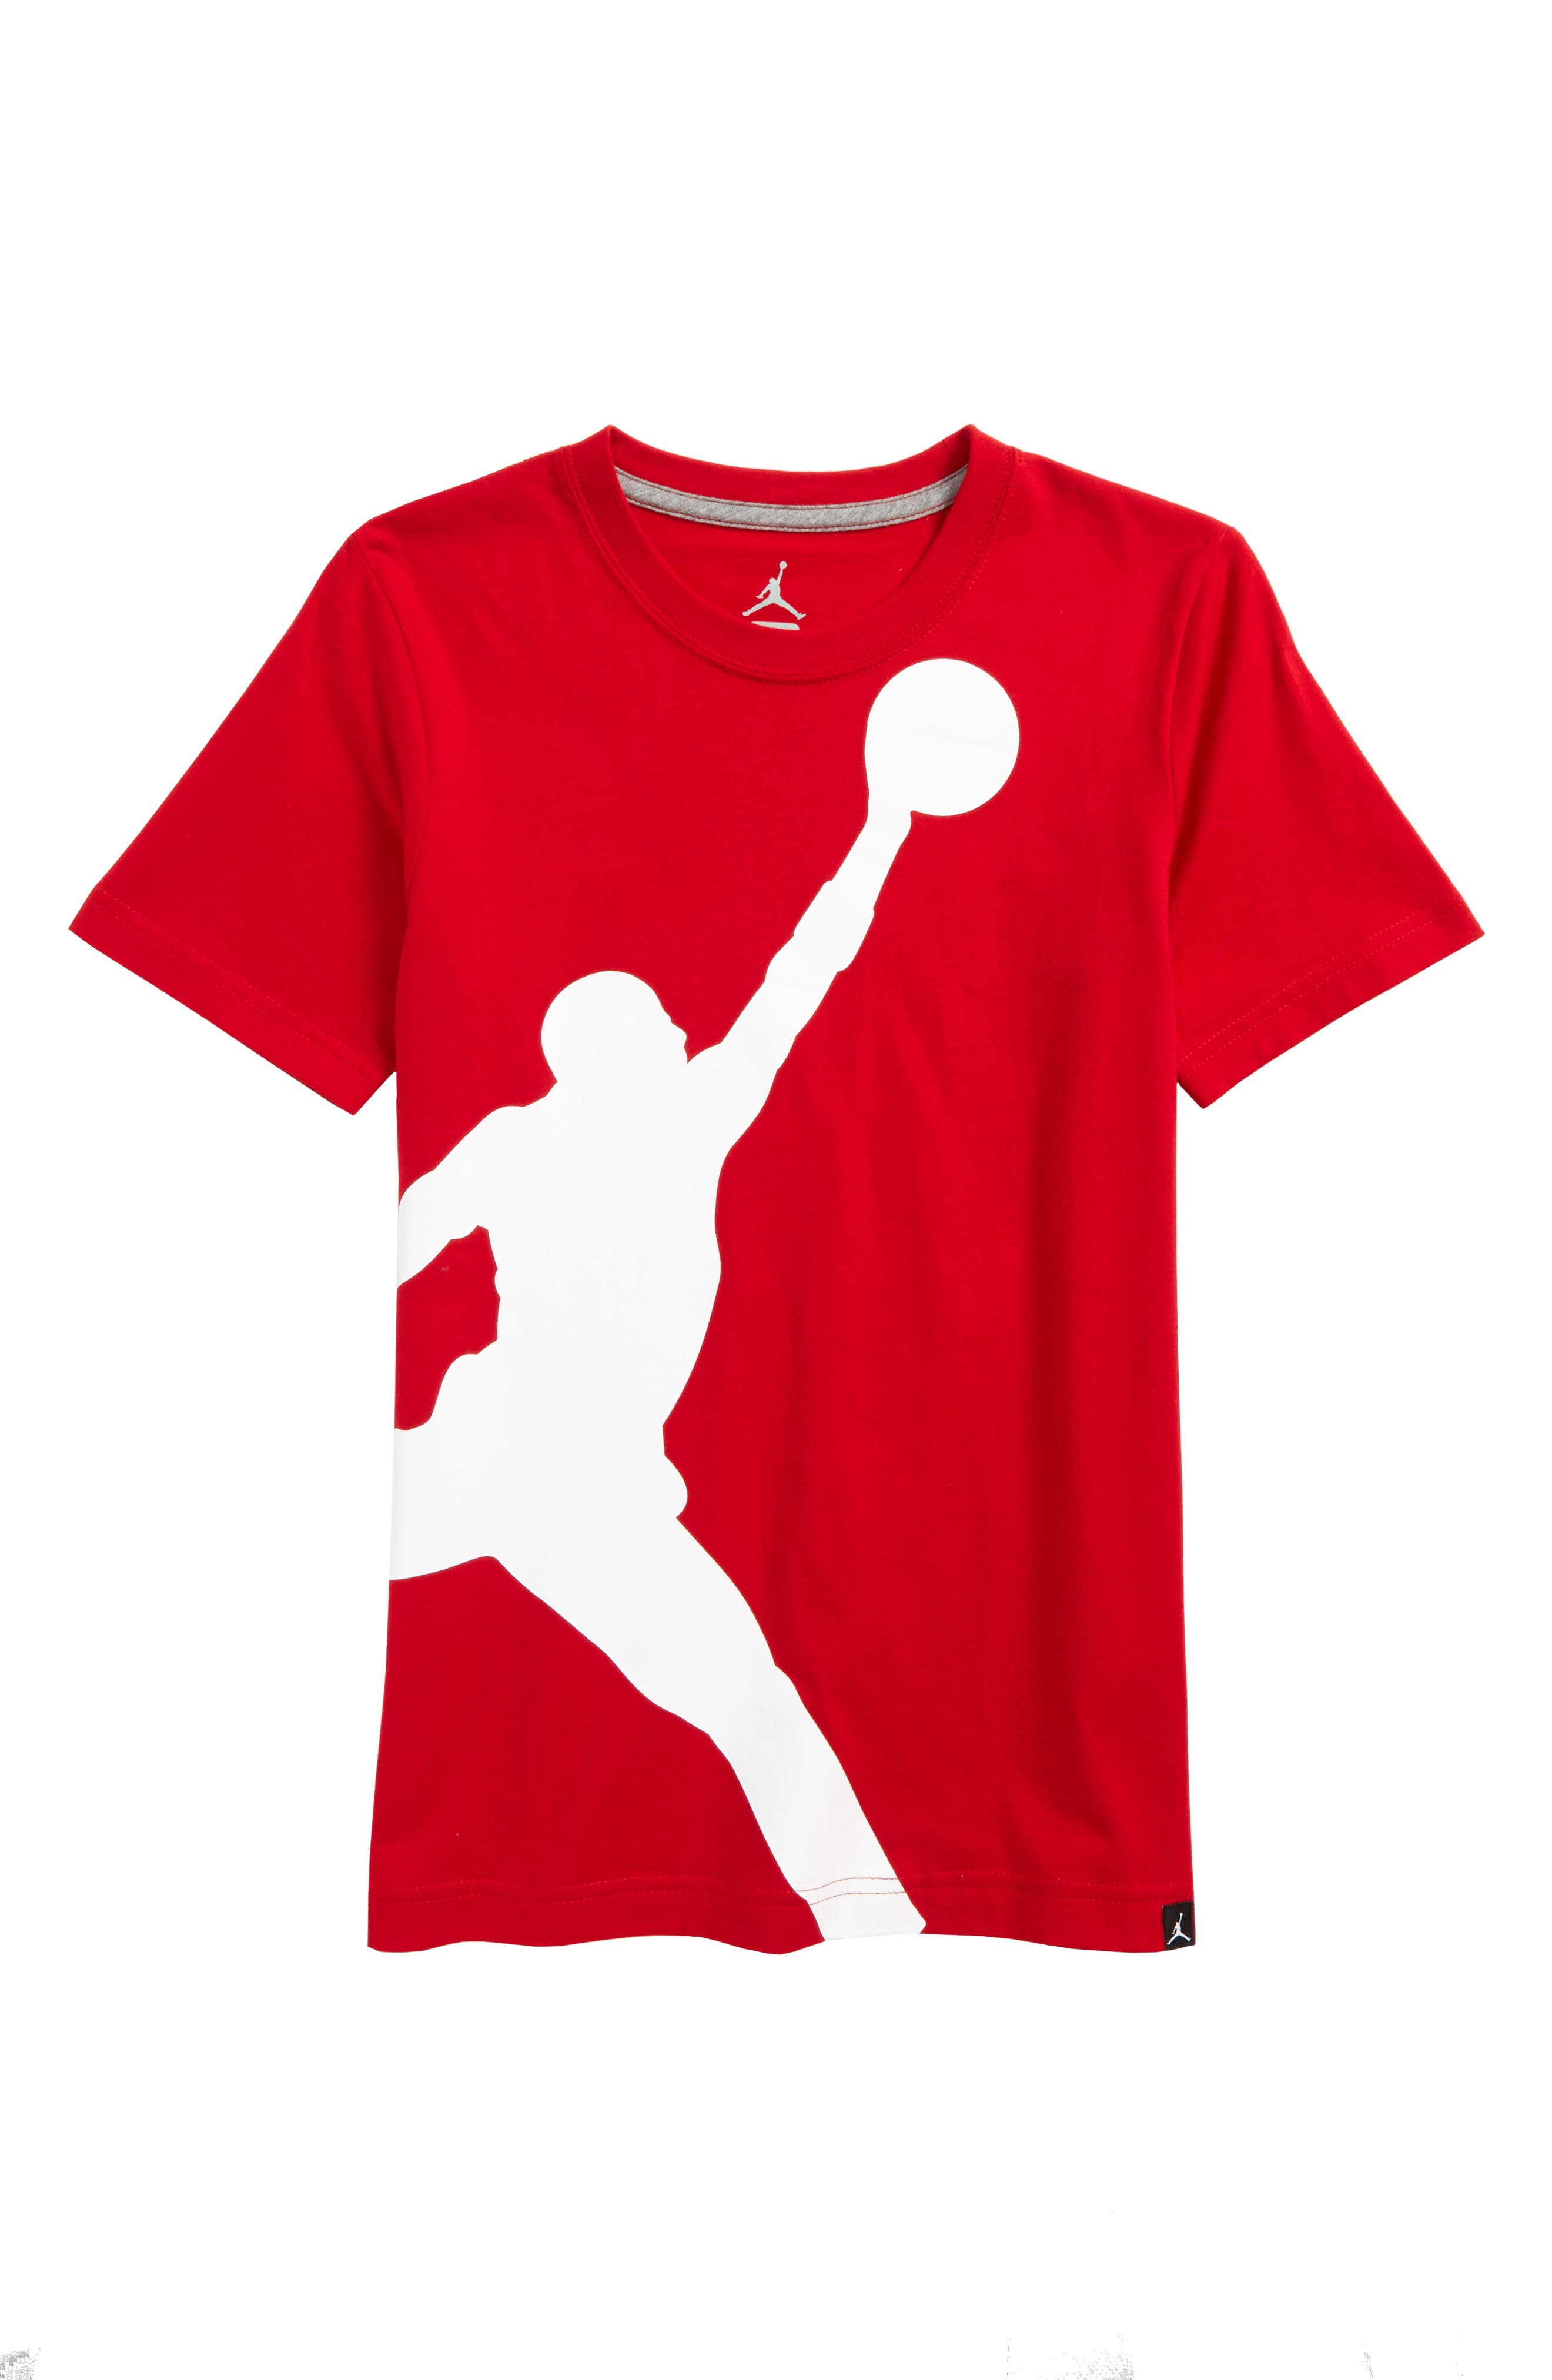 Main Image - Jordan Jumbo Jumpman T-Shirt (Big Boys)